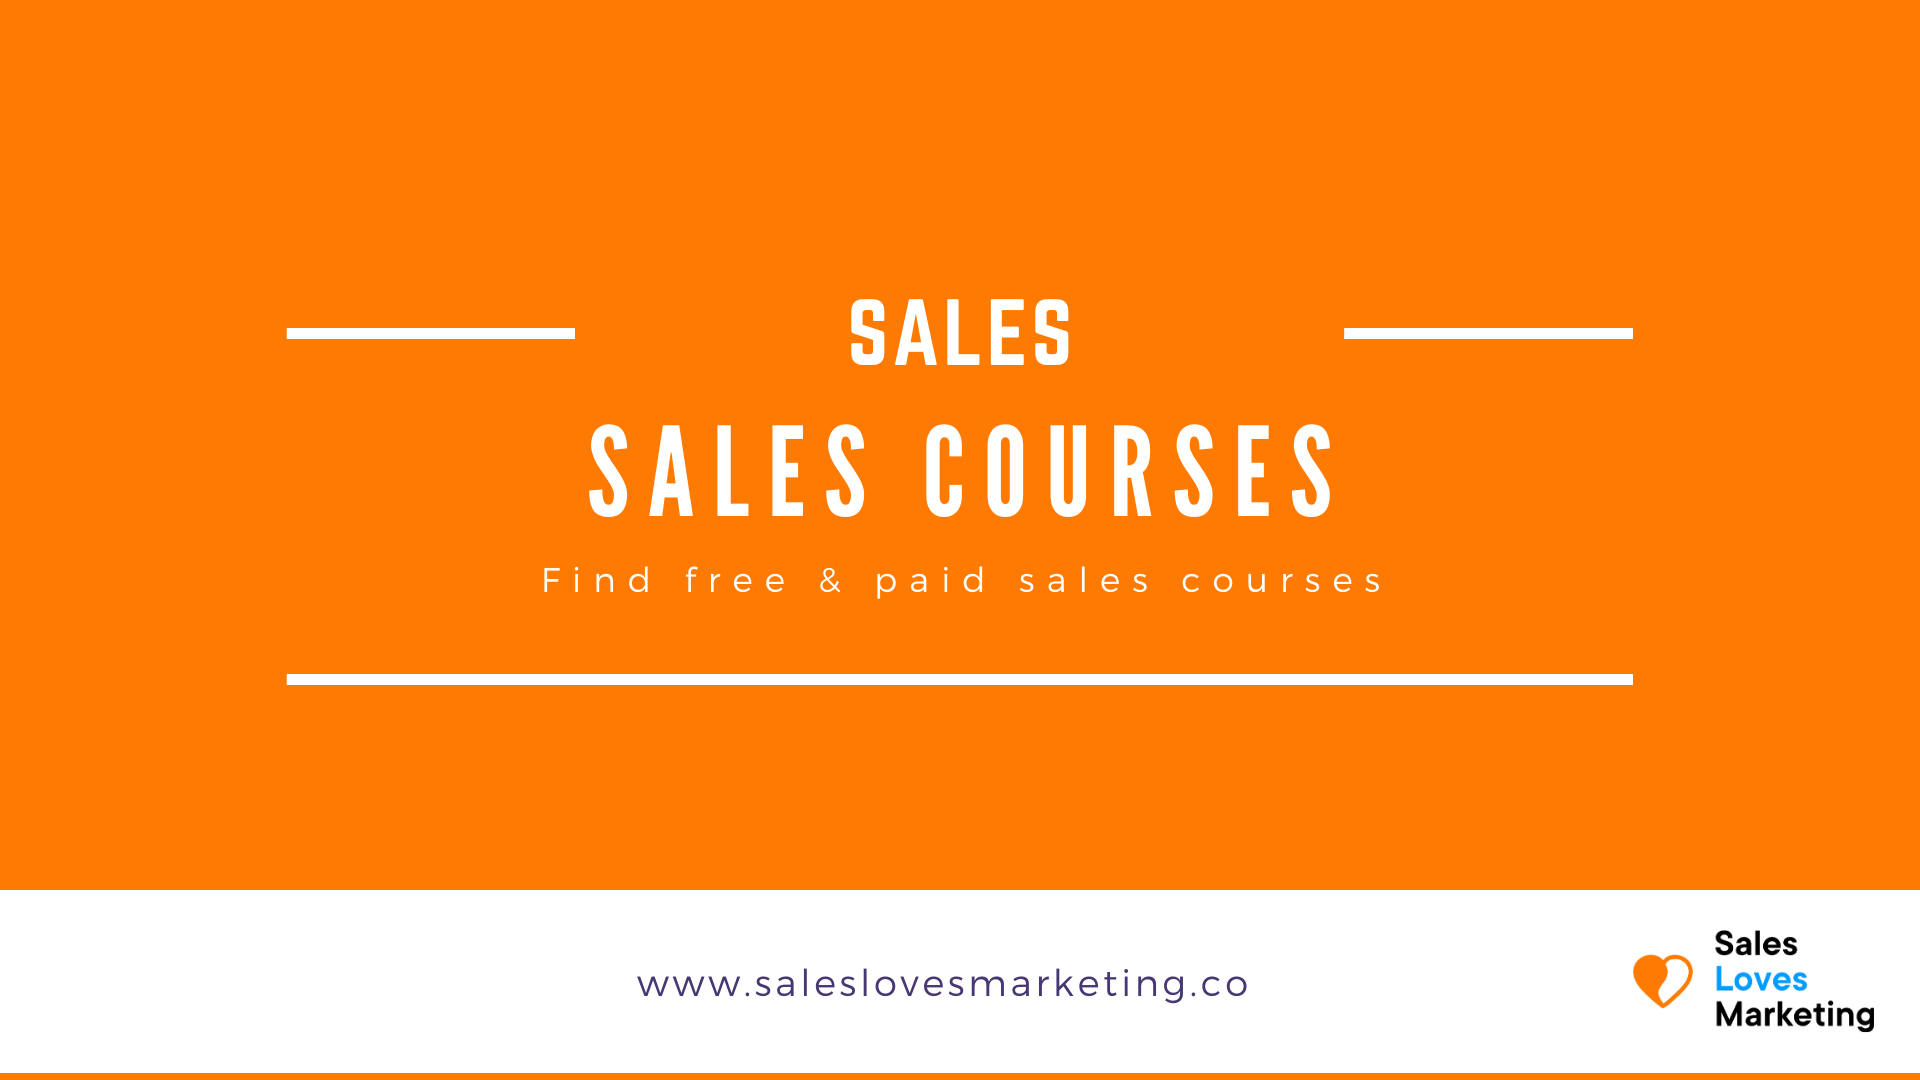 All the free and paid sales courses in one overview